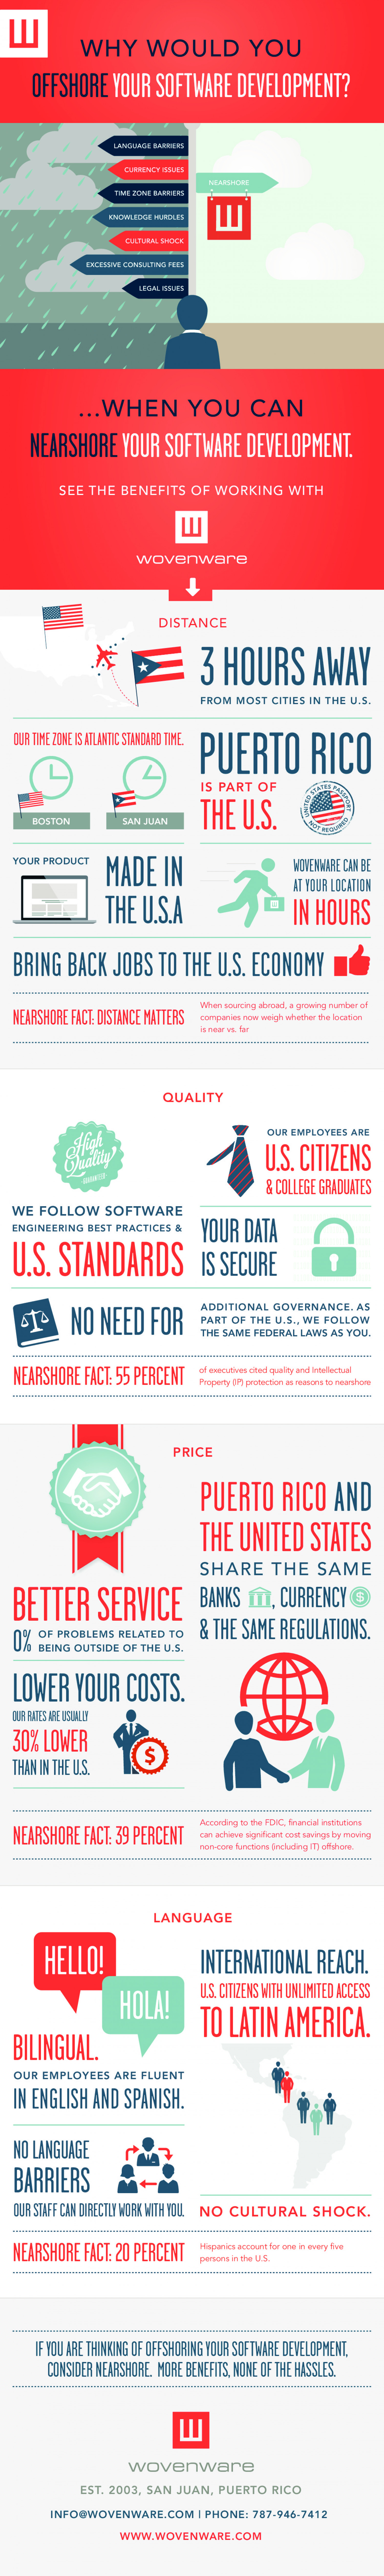 Why Would You Offshore Your Software Development? Infographic